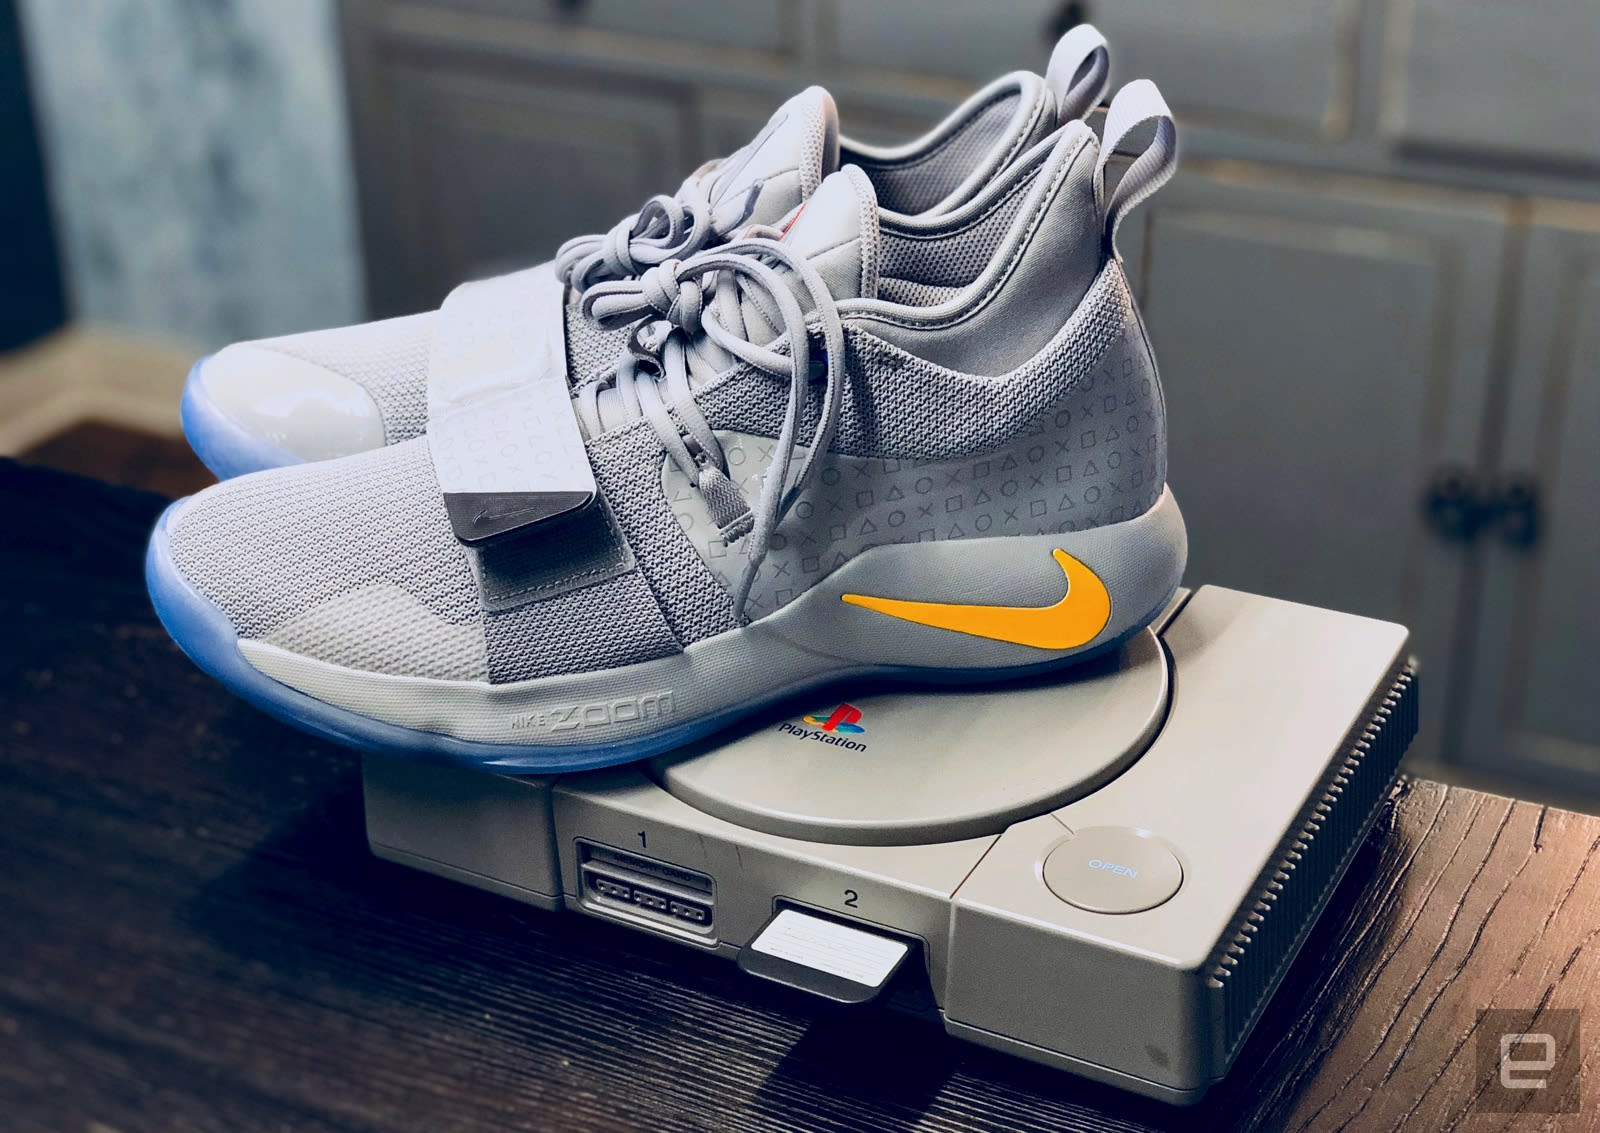 best sneakers 0efcb bcb64 Nike's new PlayStation sneakers pay homage to Sony's classic ...